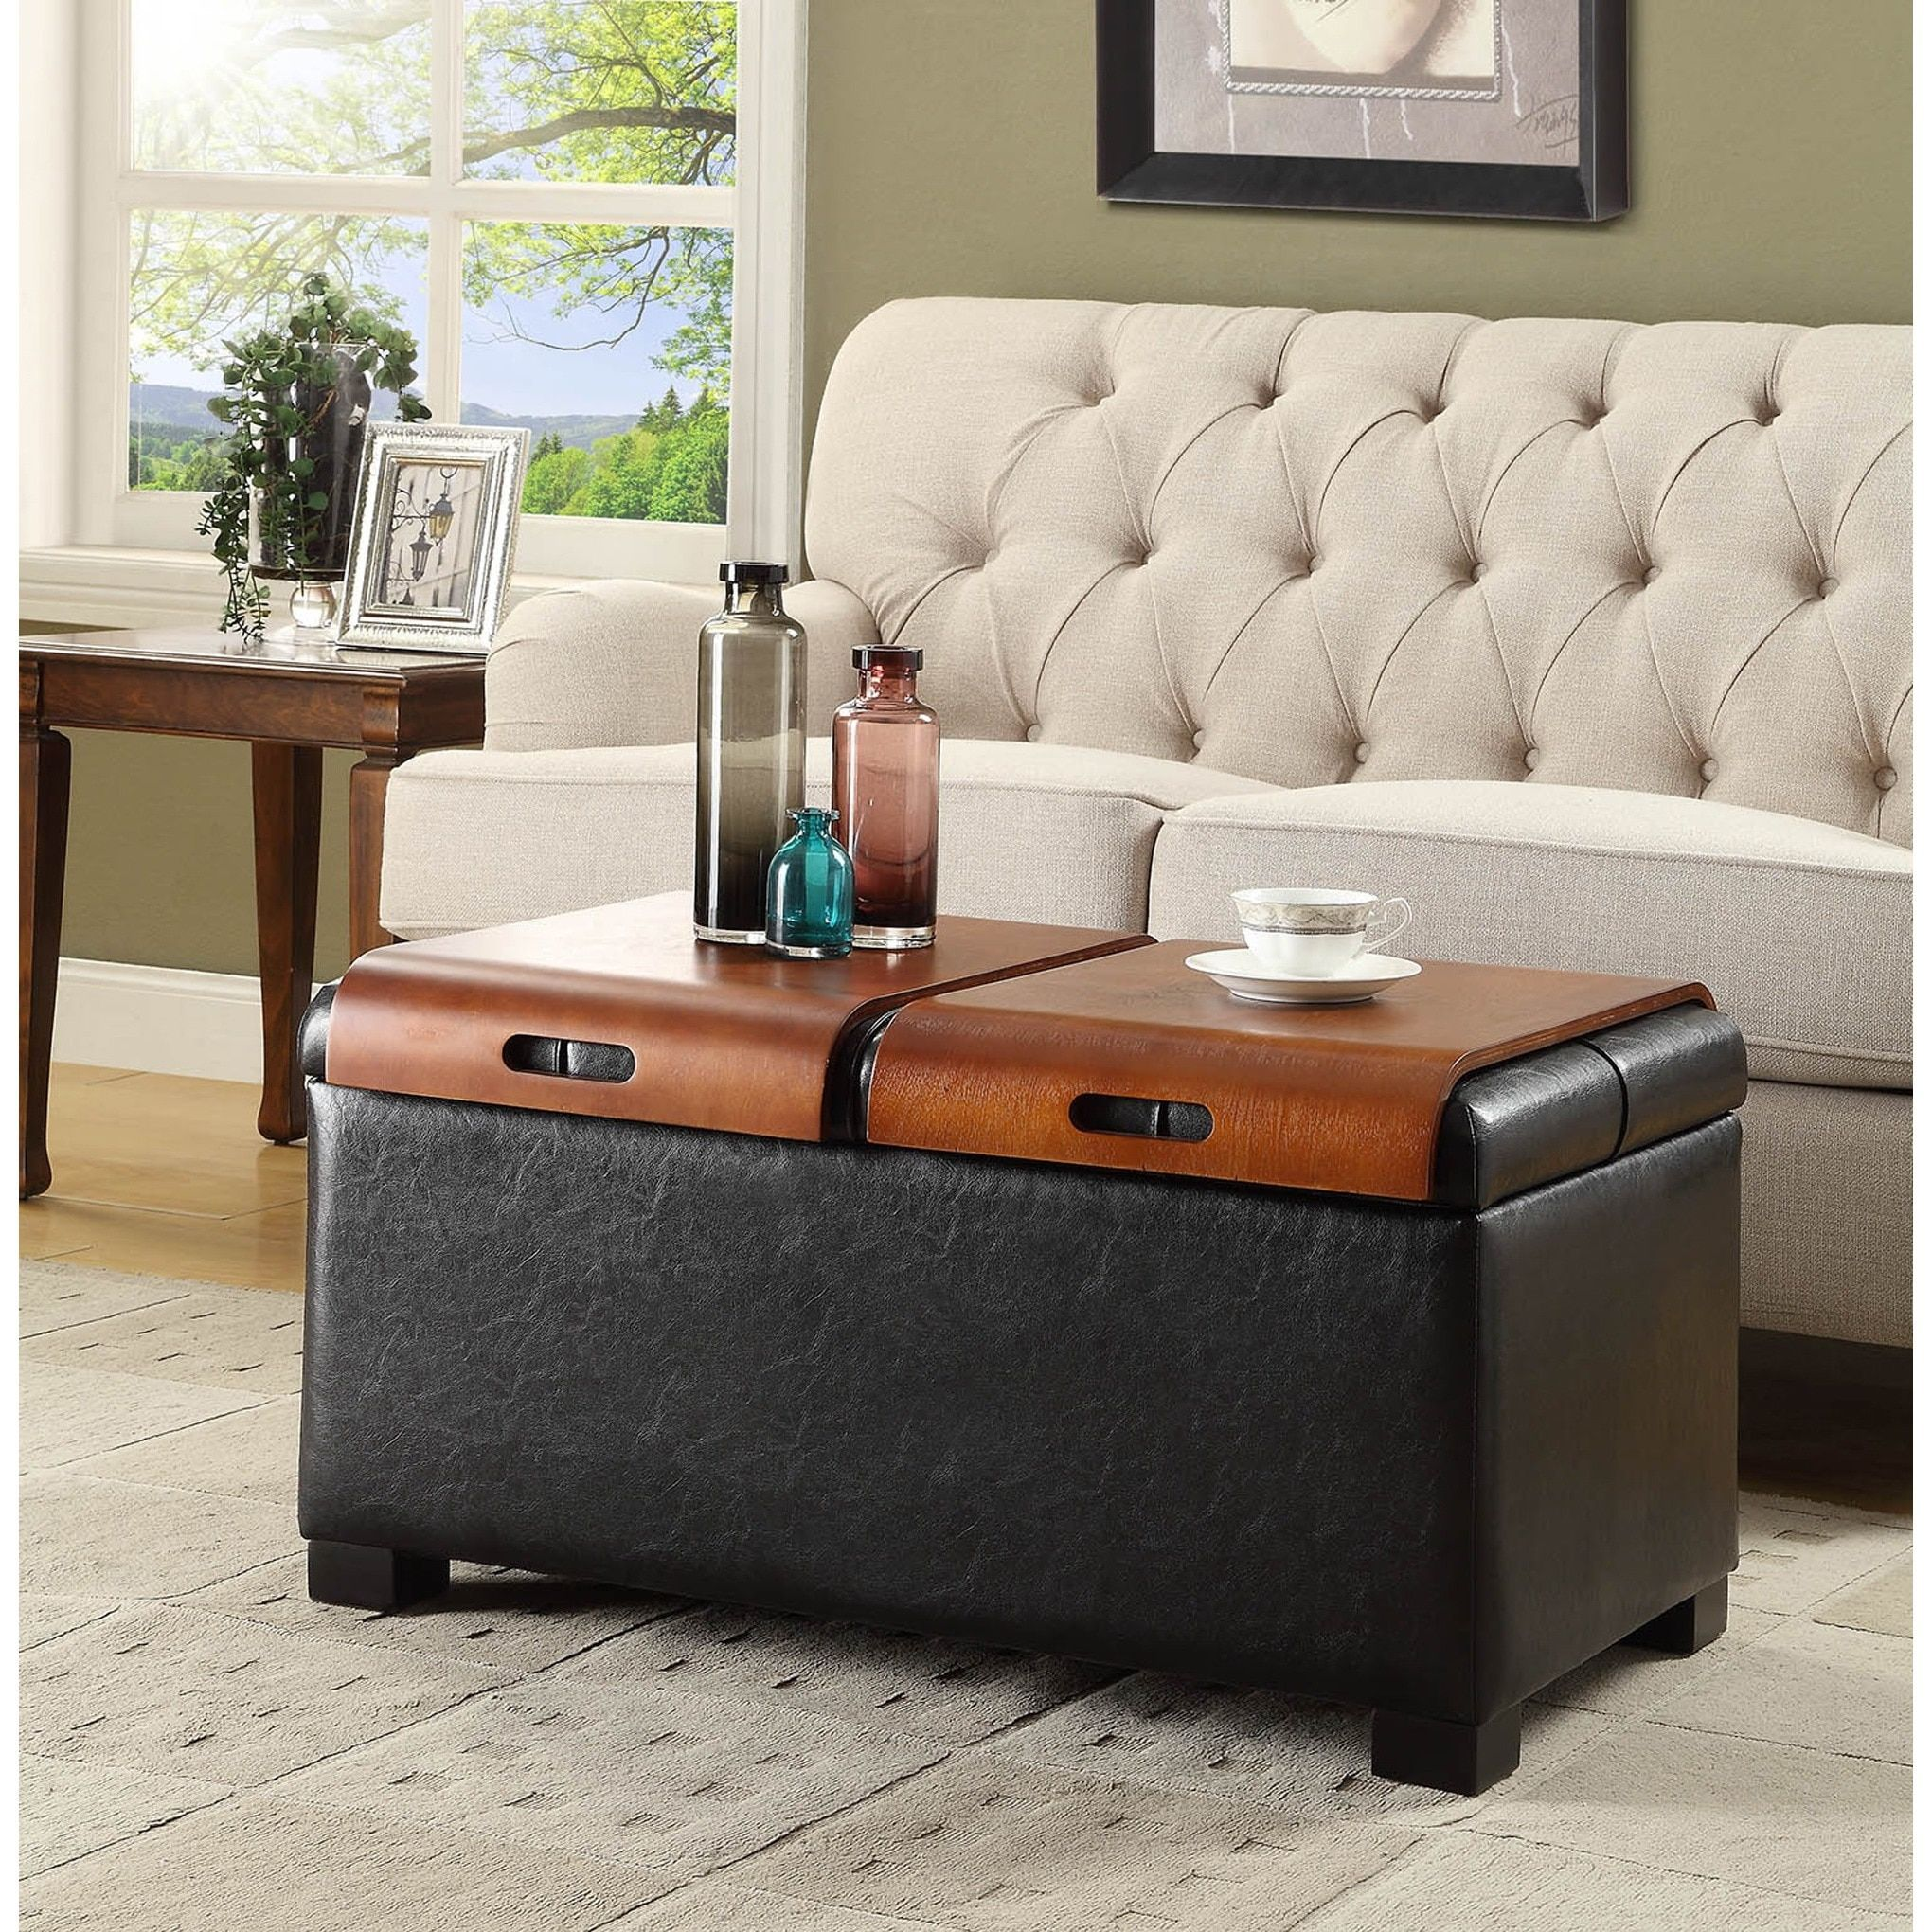 Pleasing Clay Alder Home Logan Storage Ottoman With Trays Black Short Links Chair Design For Home Short Linksinfo